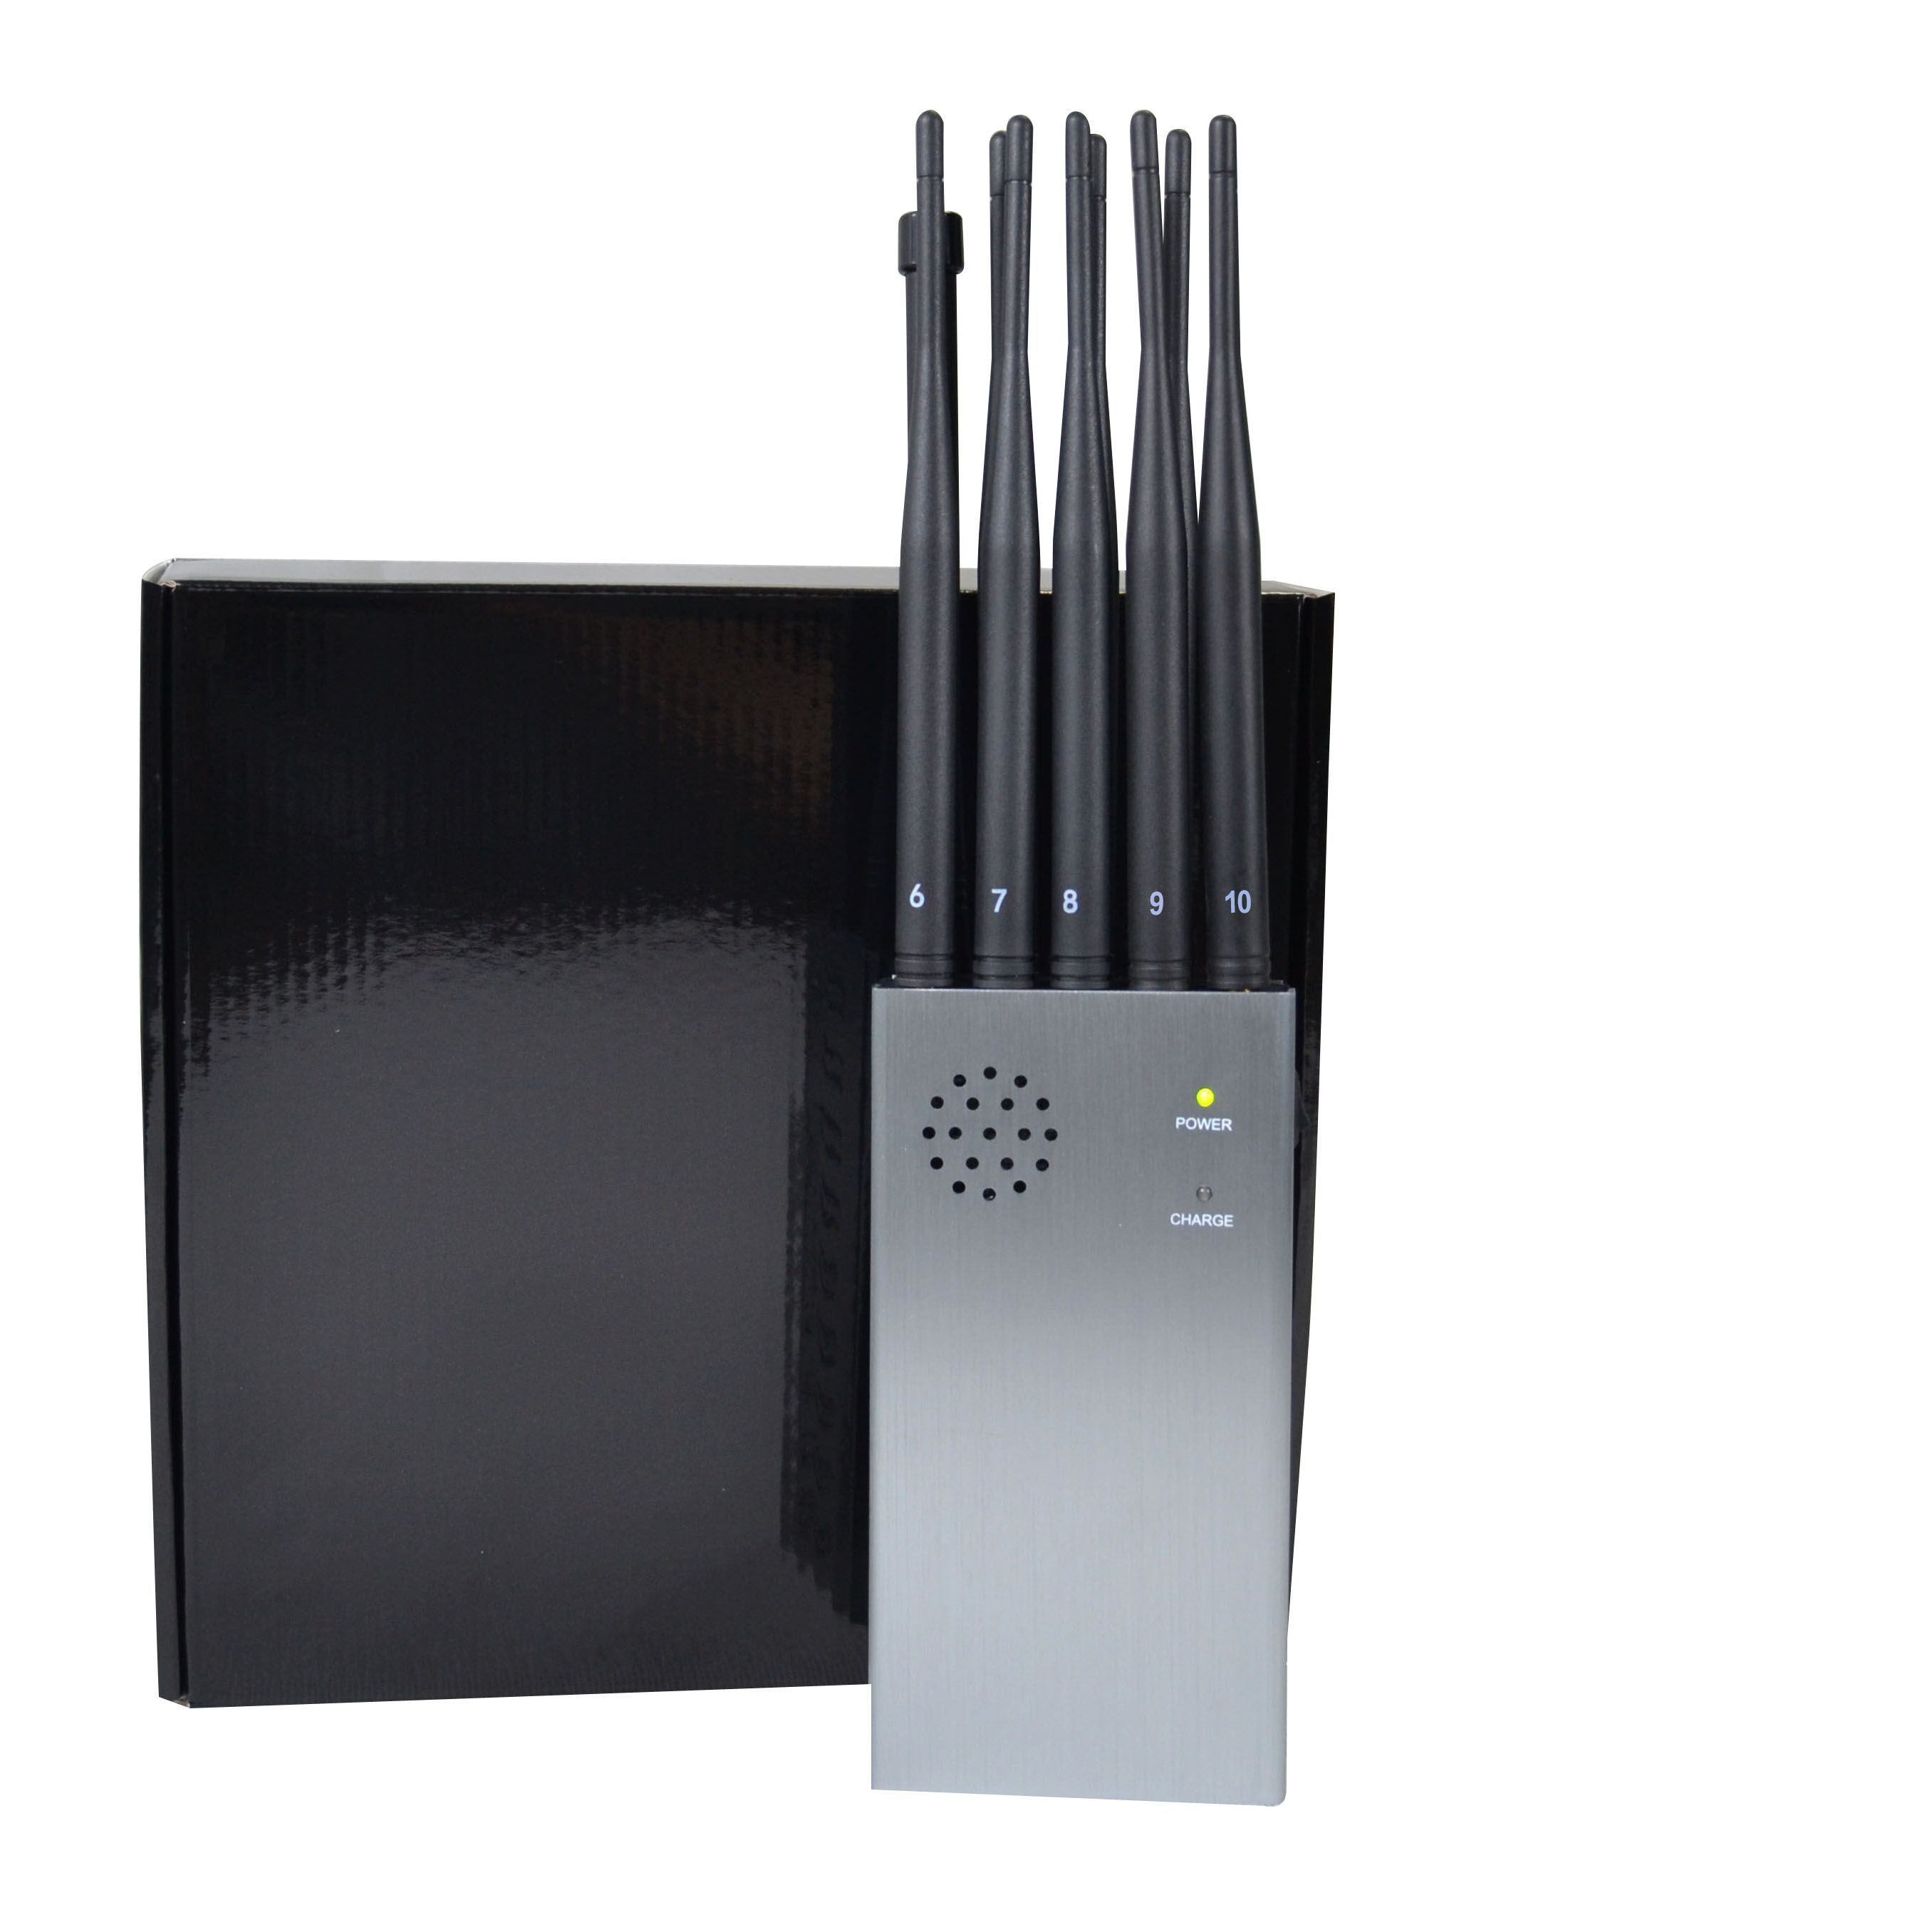 gps tracking device signal jammer - China King Jammer with Portable 10 Antennas Including 2g 3G 5g 4G WiFi, GPS Remote Control Lojack Signals - China 8000mA Battery Jammer, Large Volume Power Signal Blocker